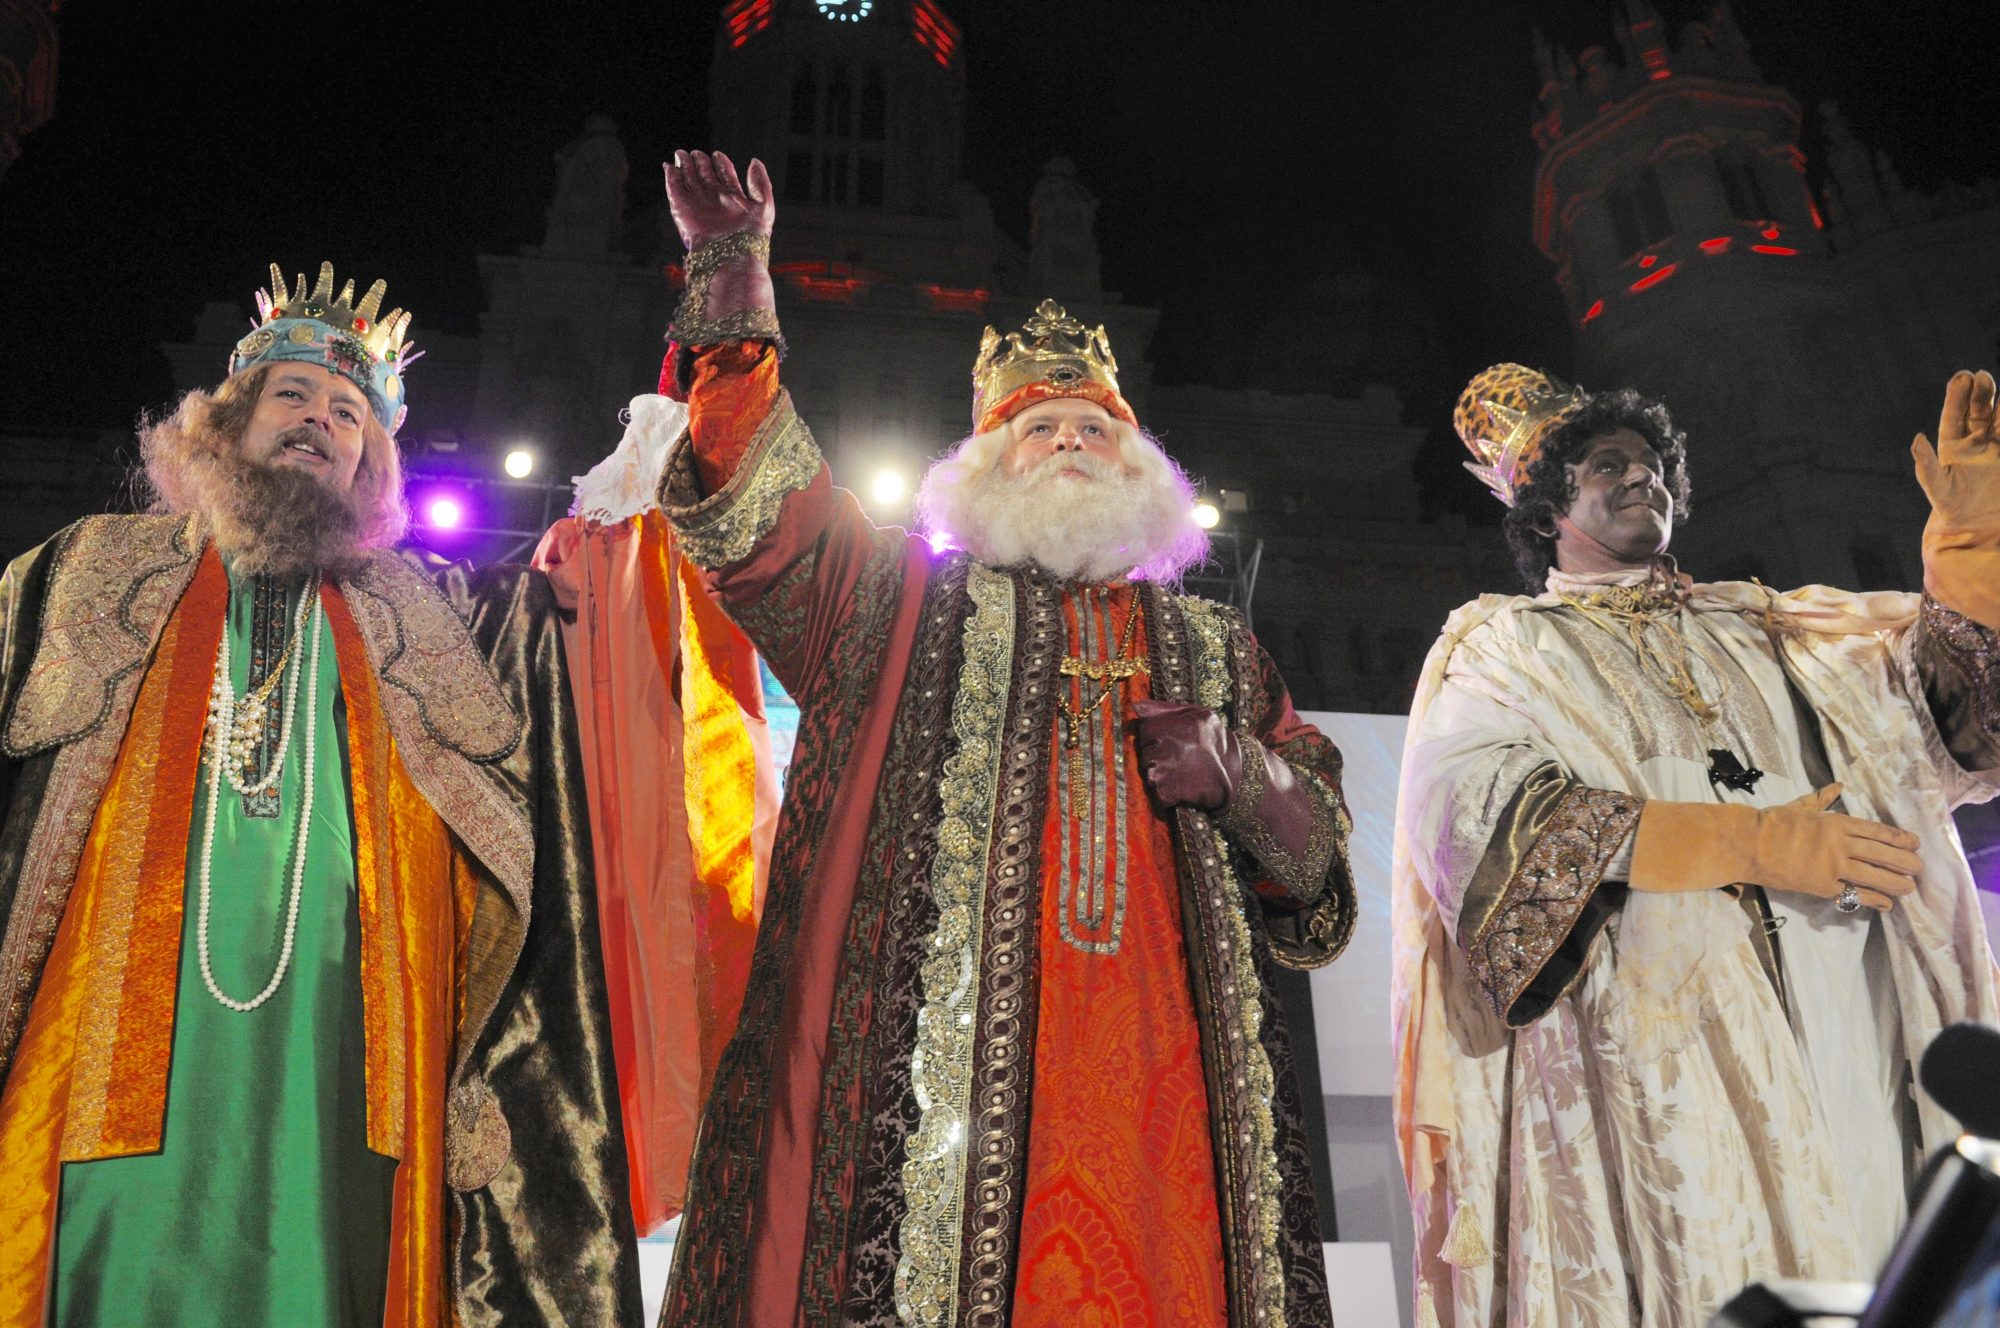 Three Kings Majorca - January weather in Mallorca